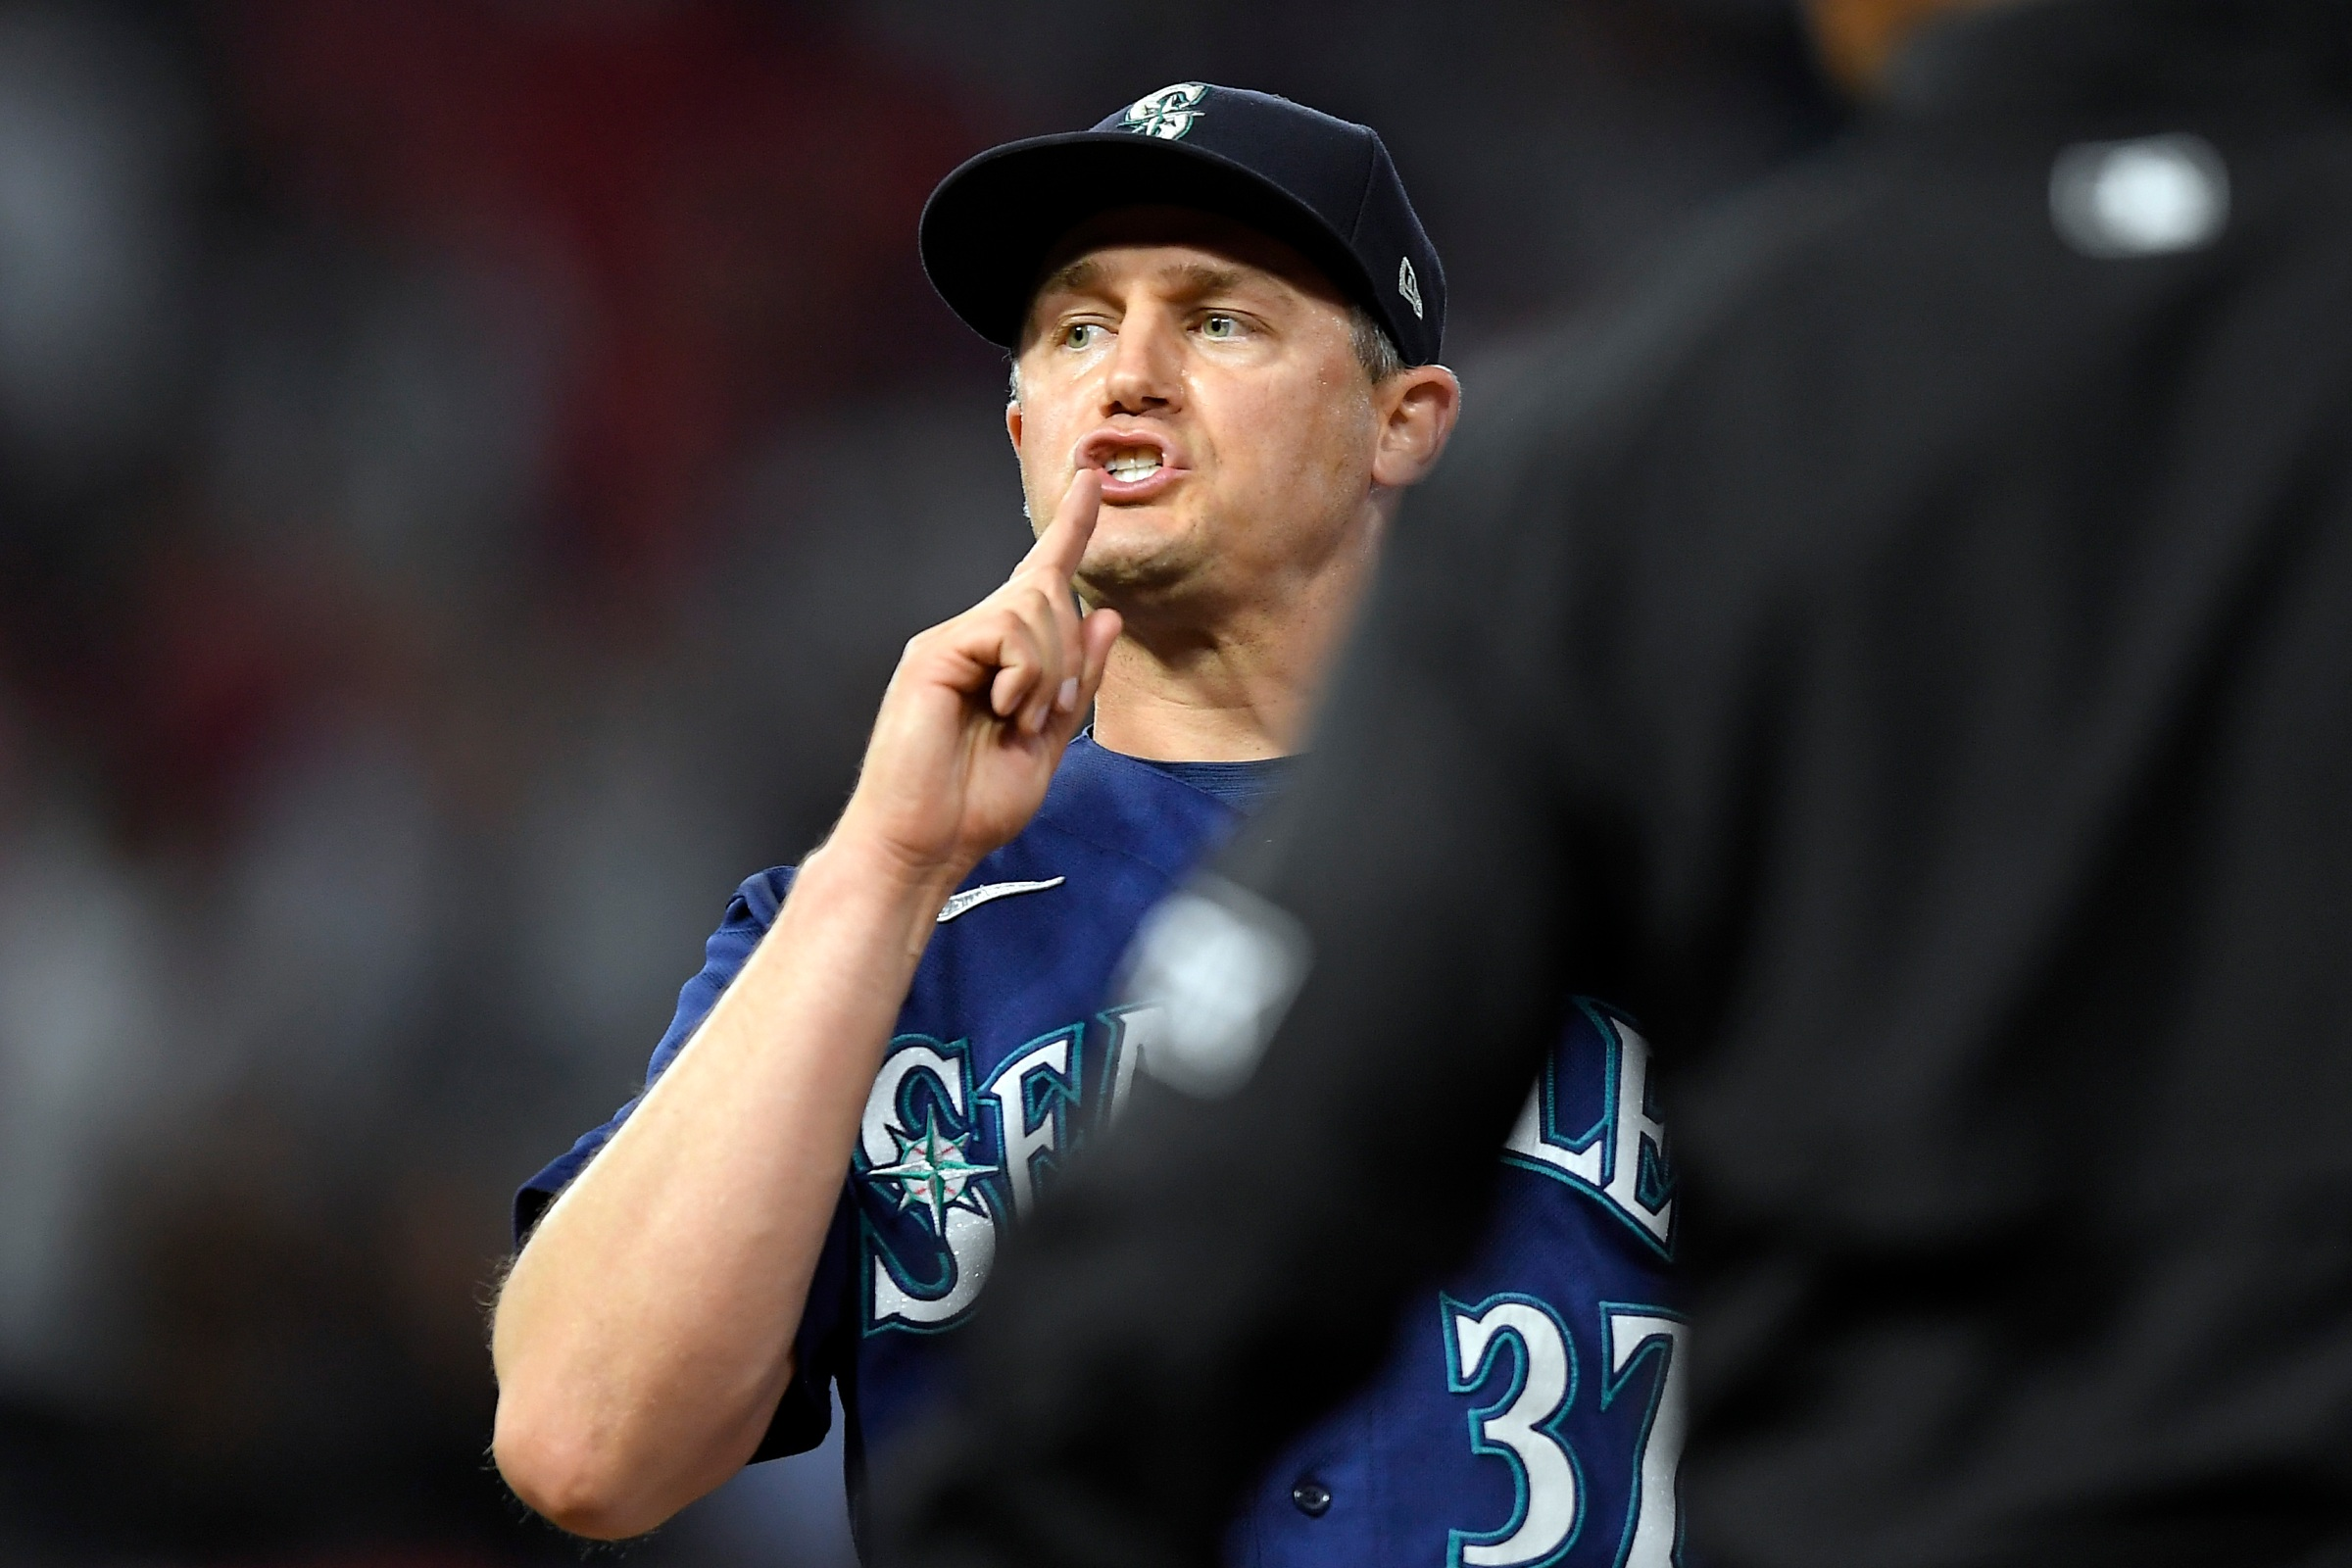 Seattle Mariners reliever Paul Sewald hushes the crowd in Anaheim down the stretch of his team's failed 2021 playoff run.